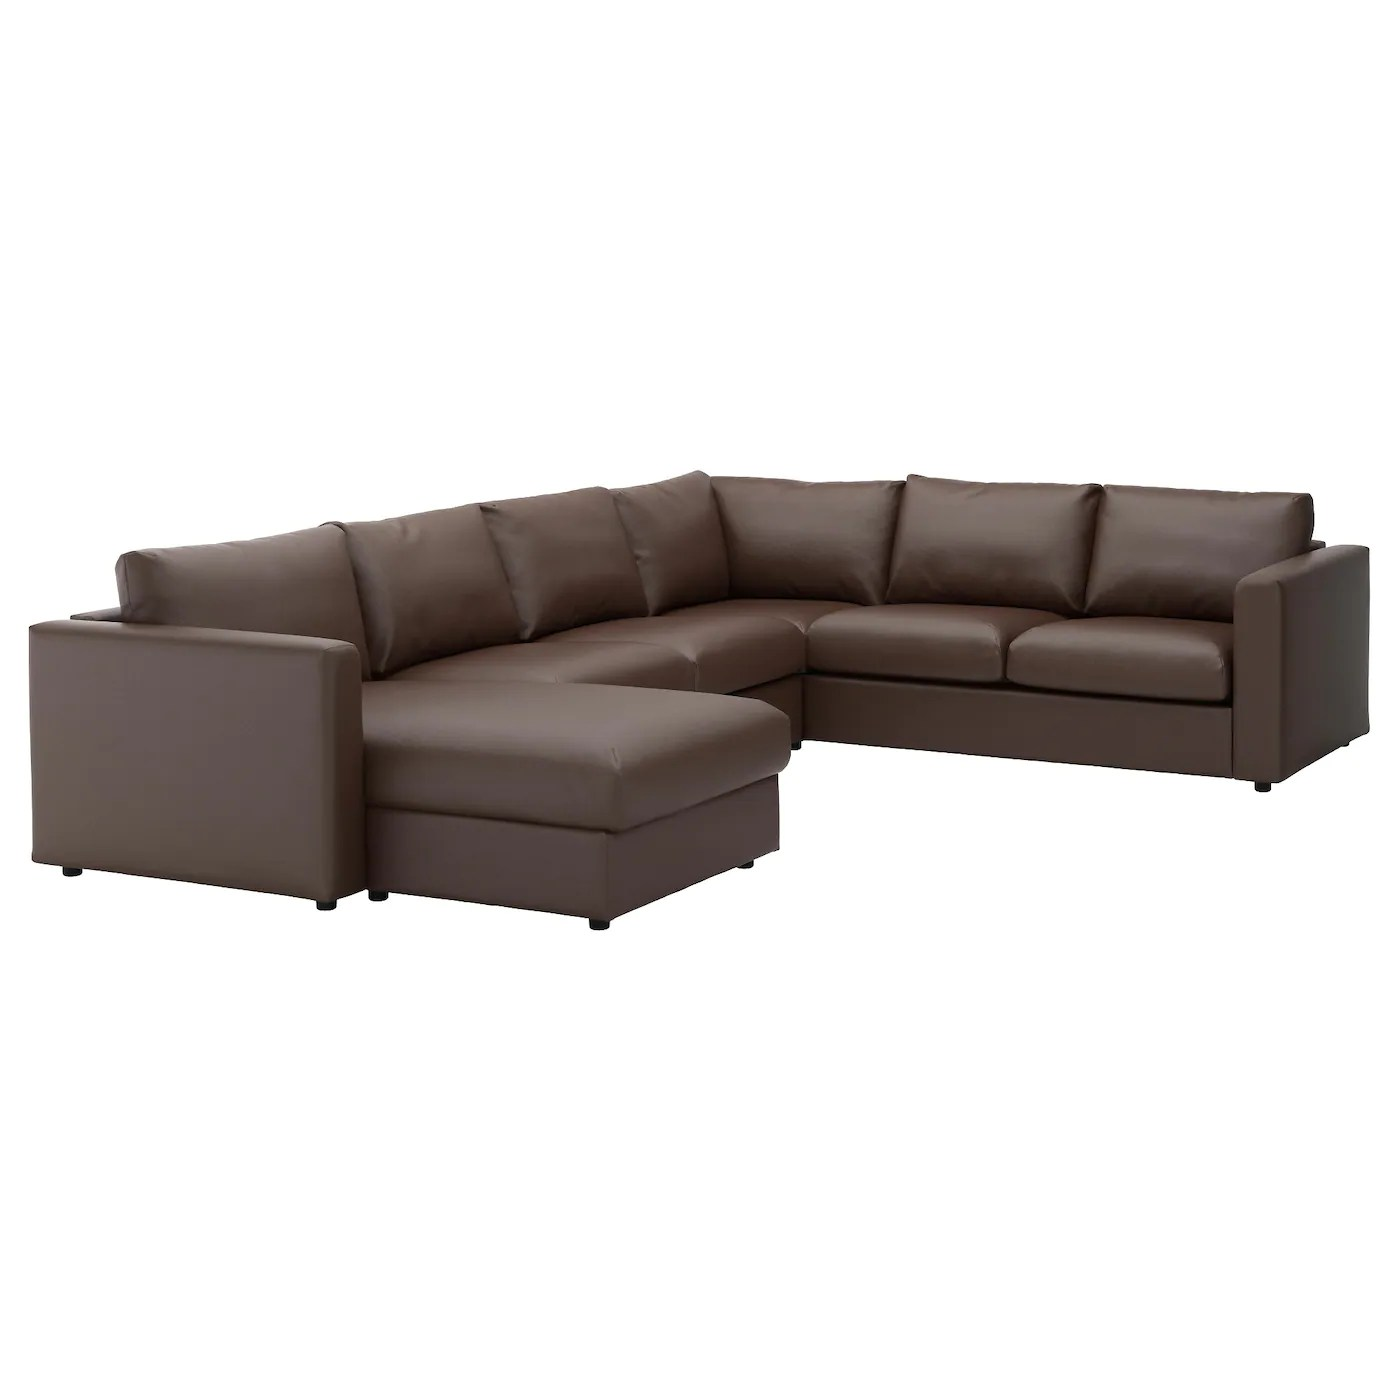 corner sofa bed chaise longue chair stuffing vimle 5 seat with farsta dark